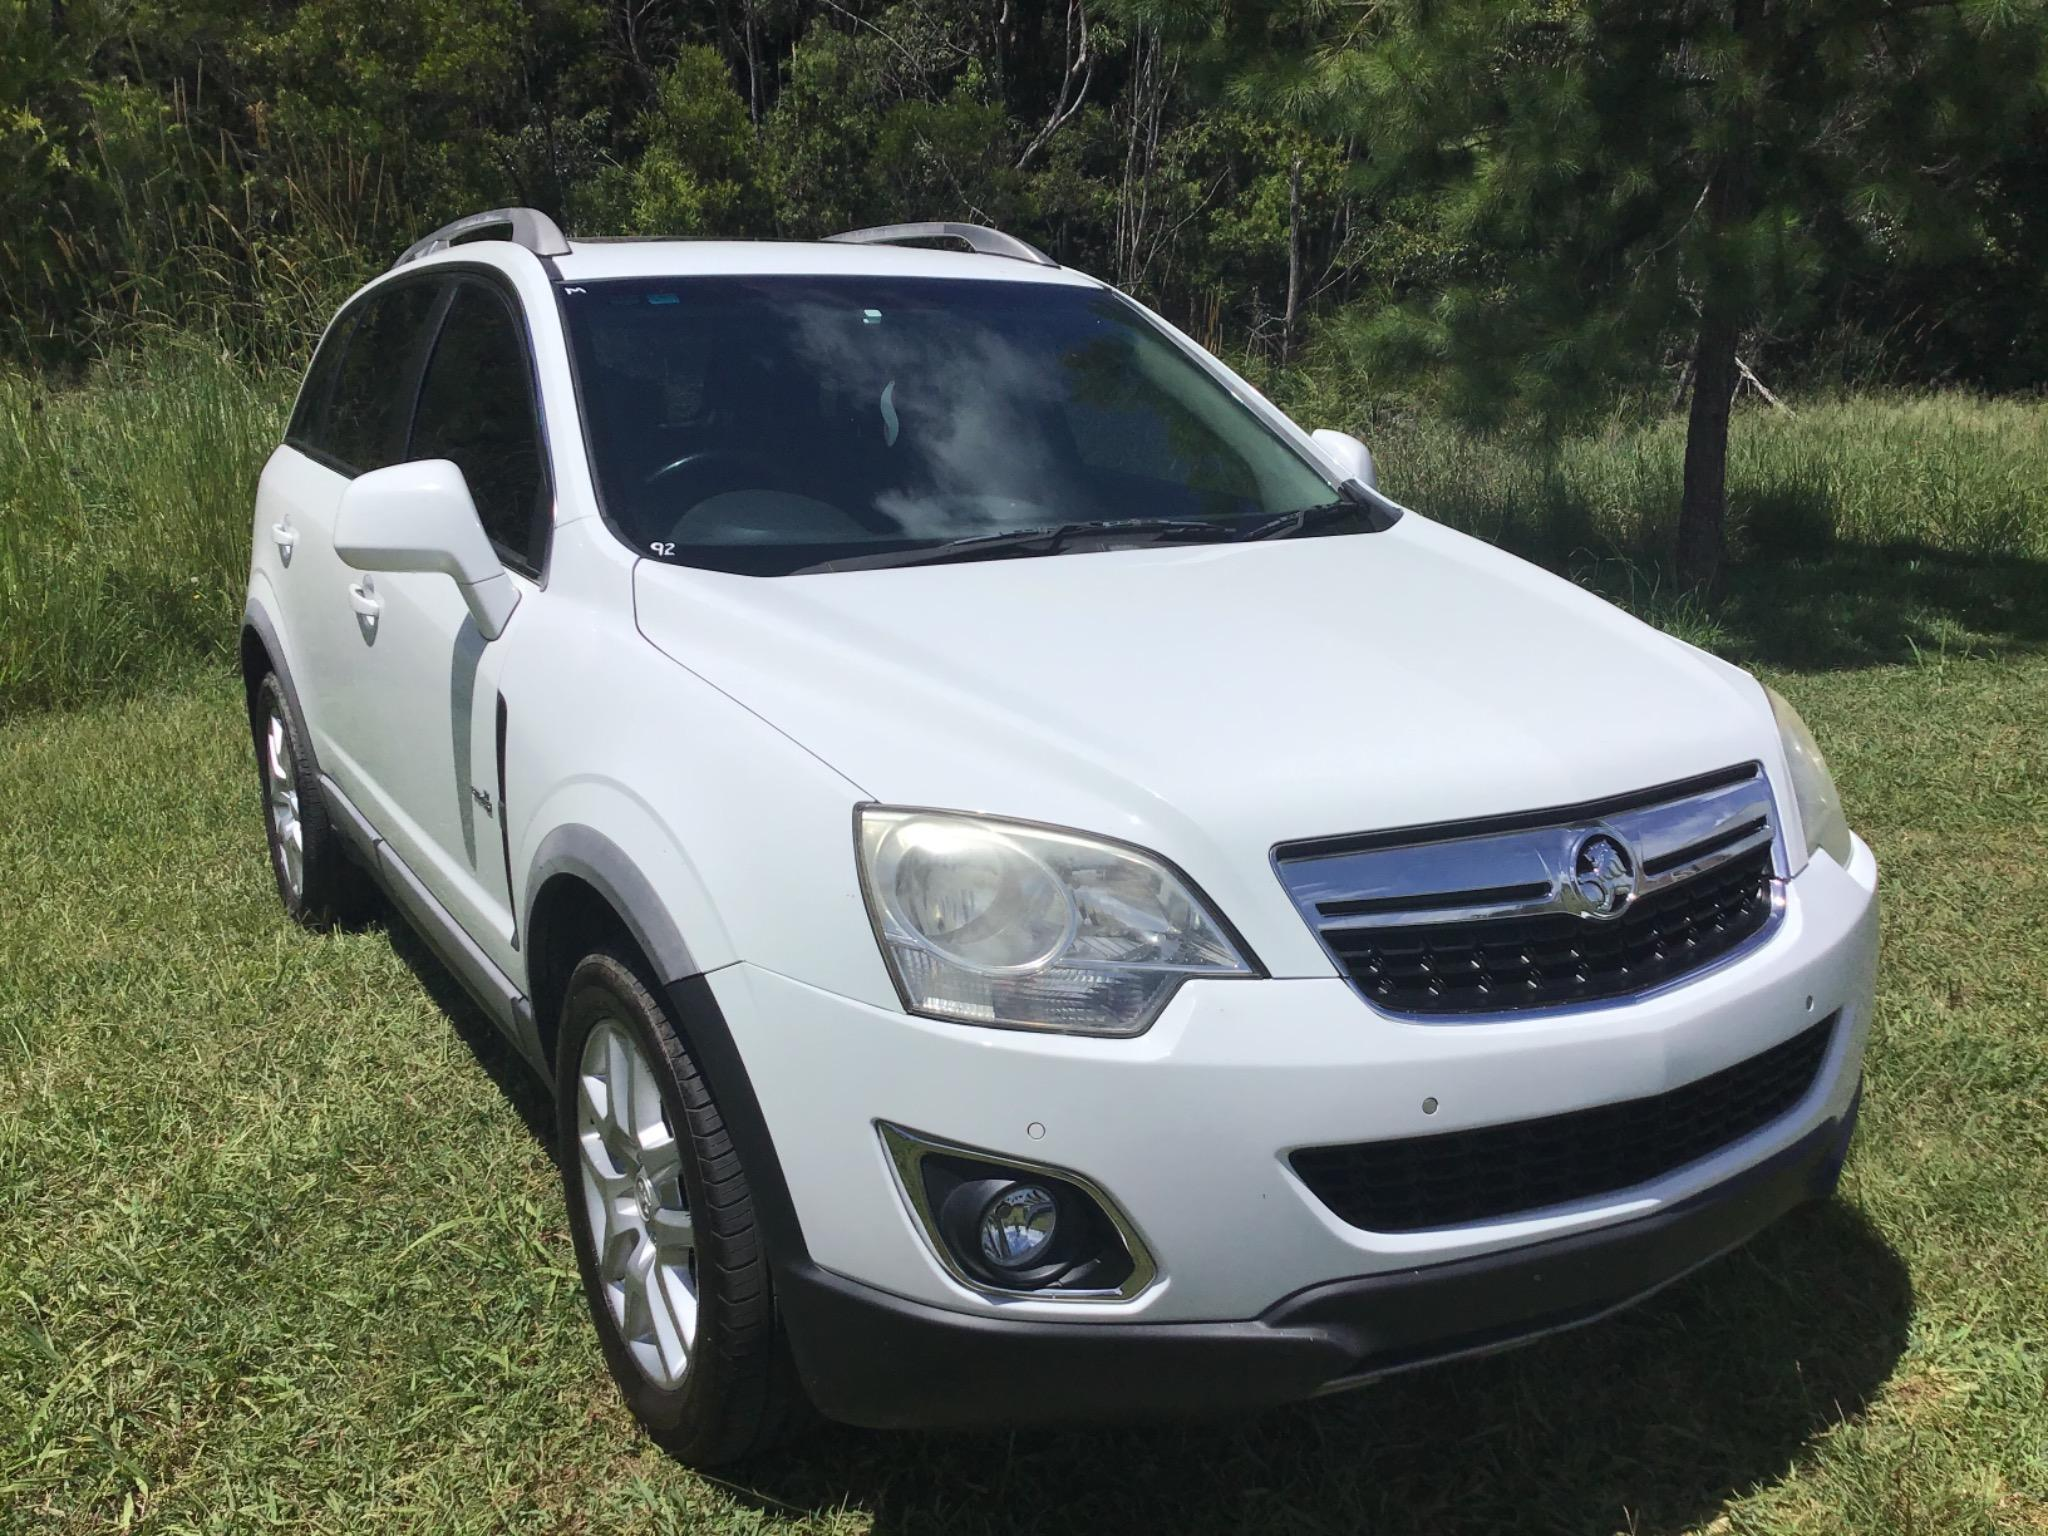 2012 Holden Captiva CG Series II 5 Wagon 4dr Spts Auto 6sp 2.4i (FWD) Picture 8